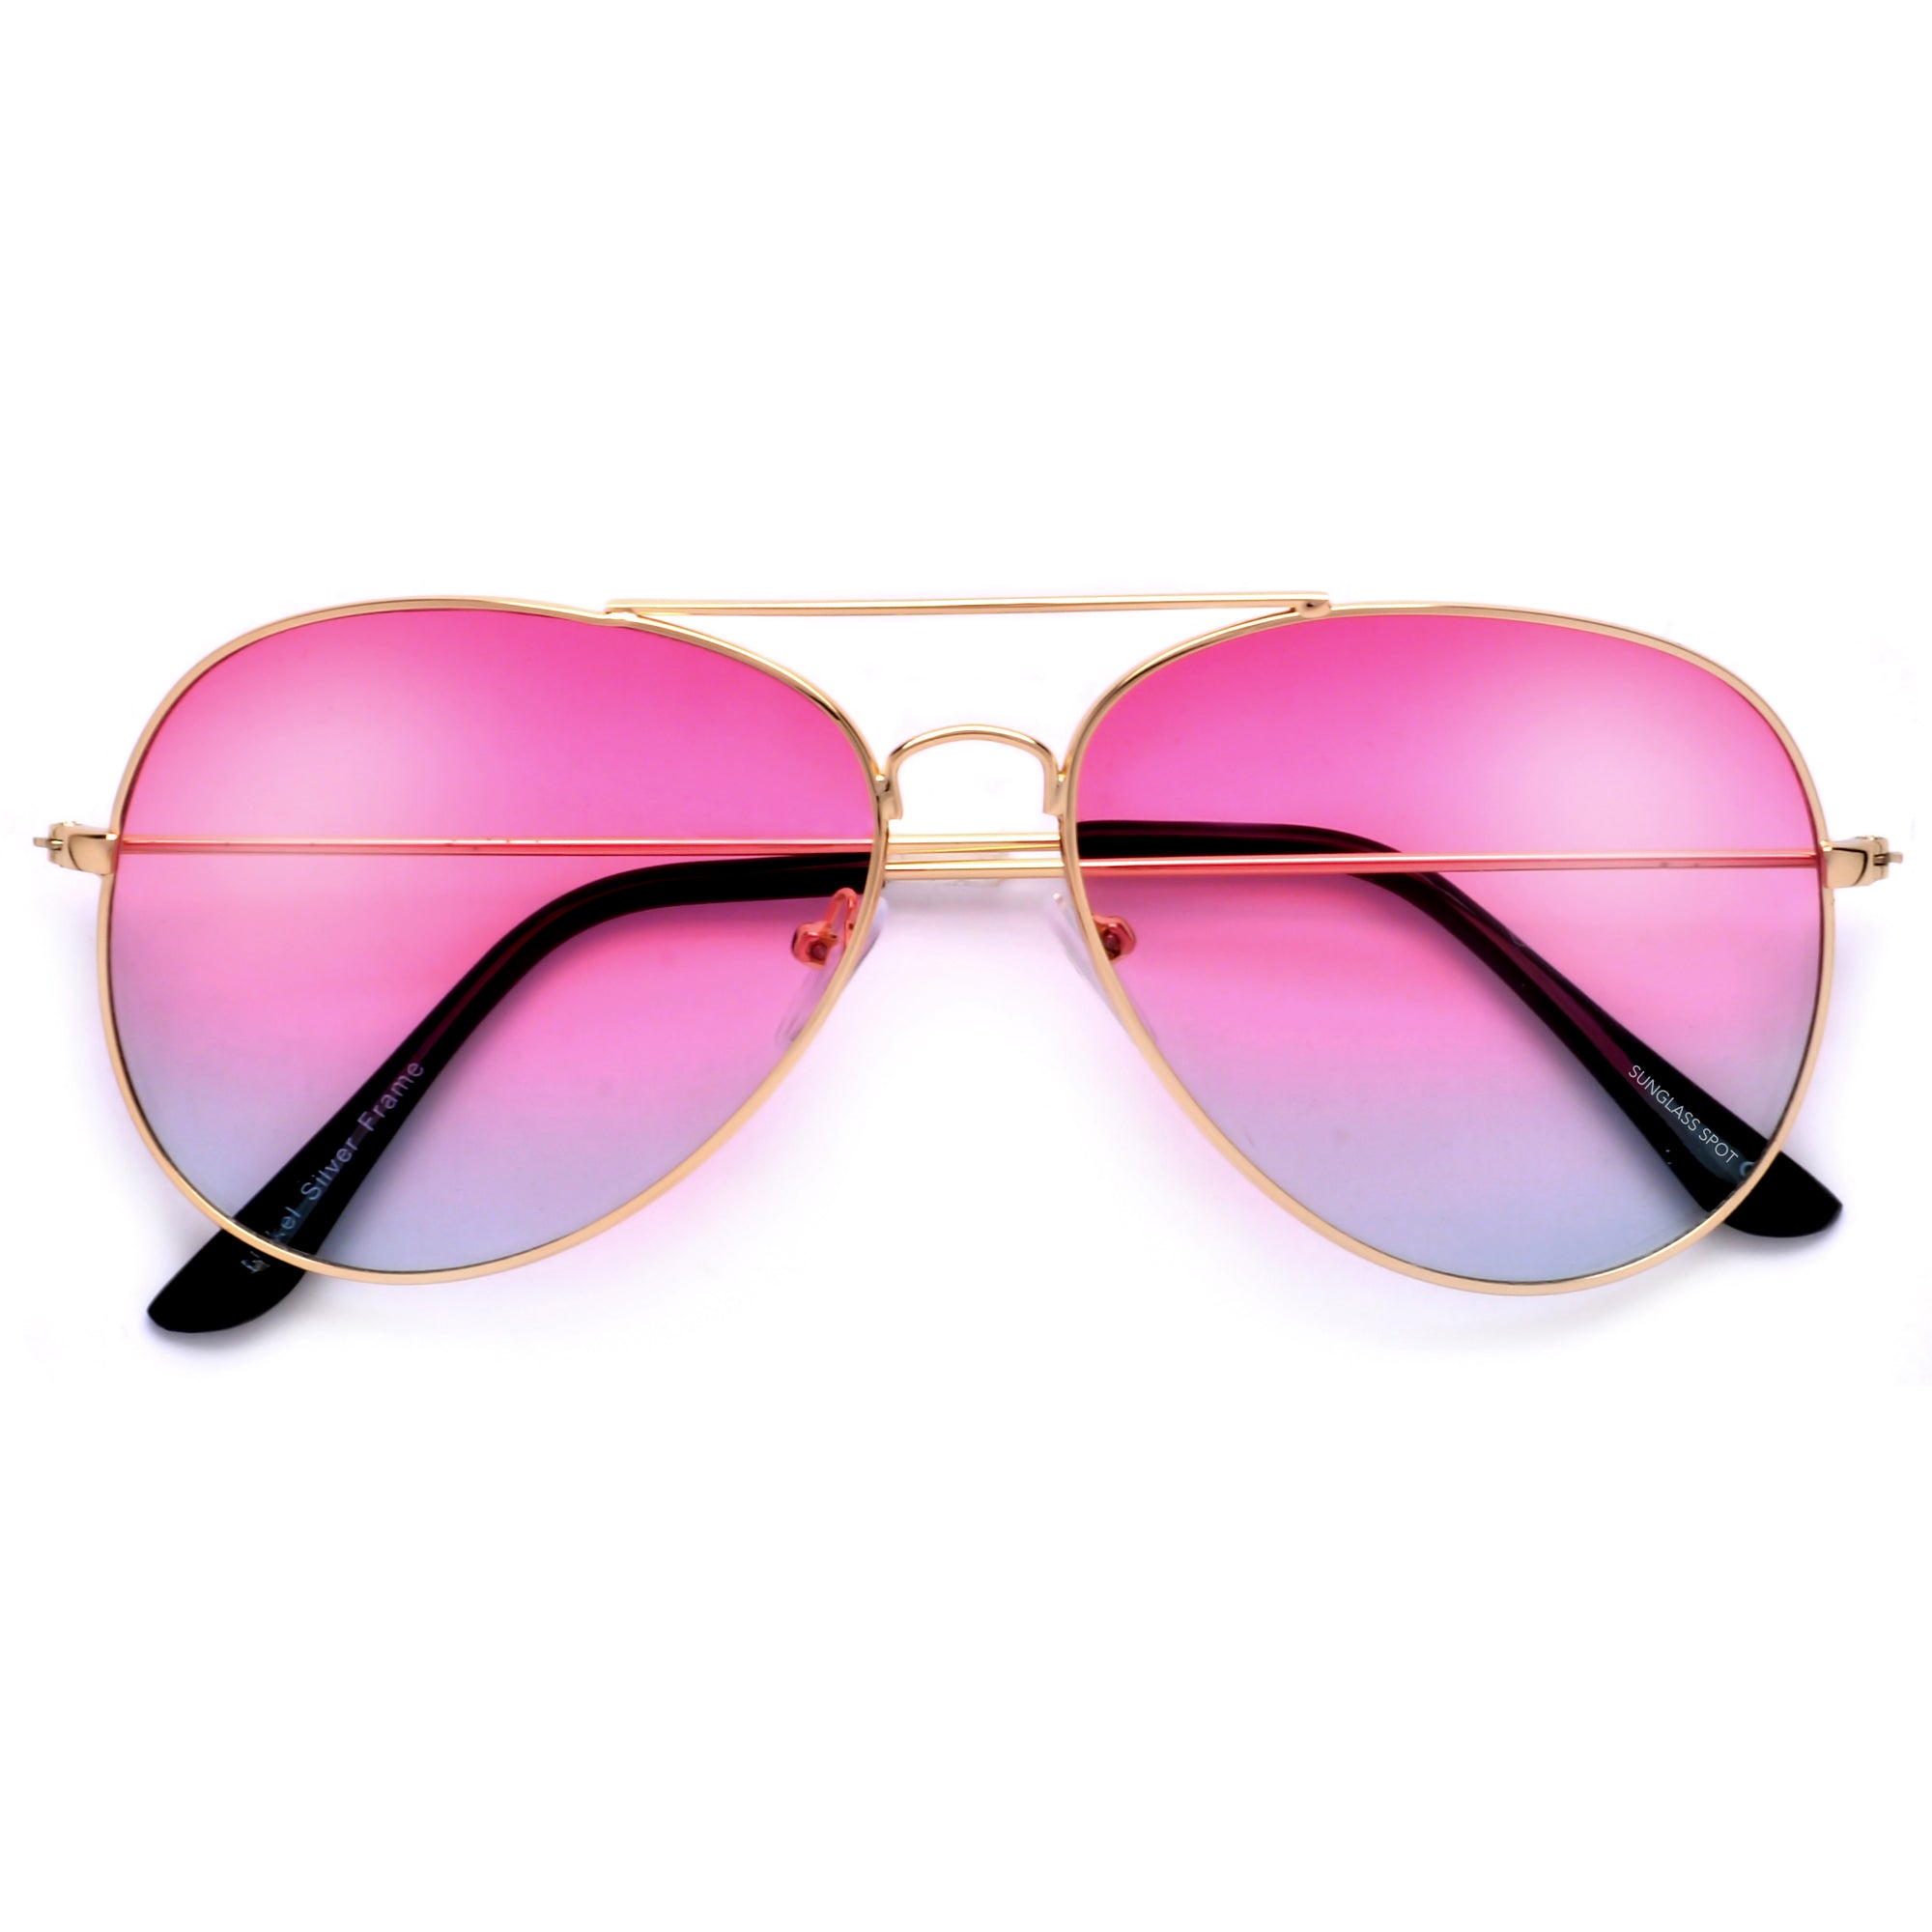 7b53b0d3cc https   sunglassspot.com  daily https   sunglassspot.com products high ...